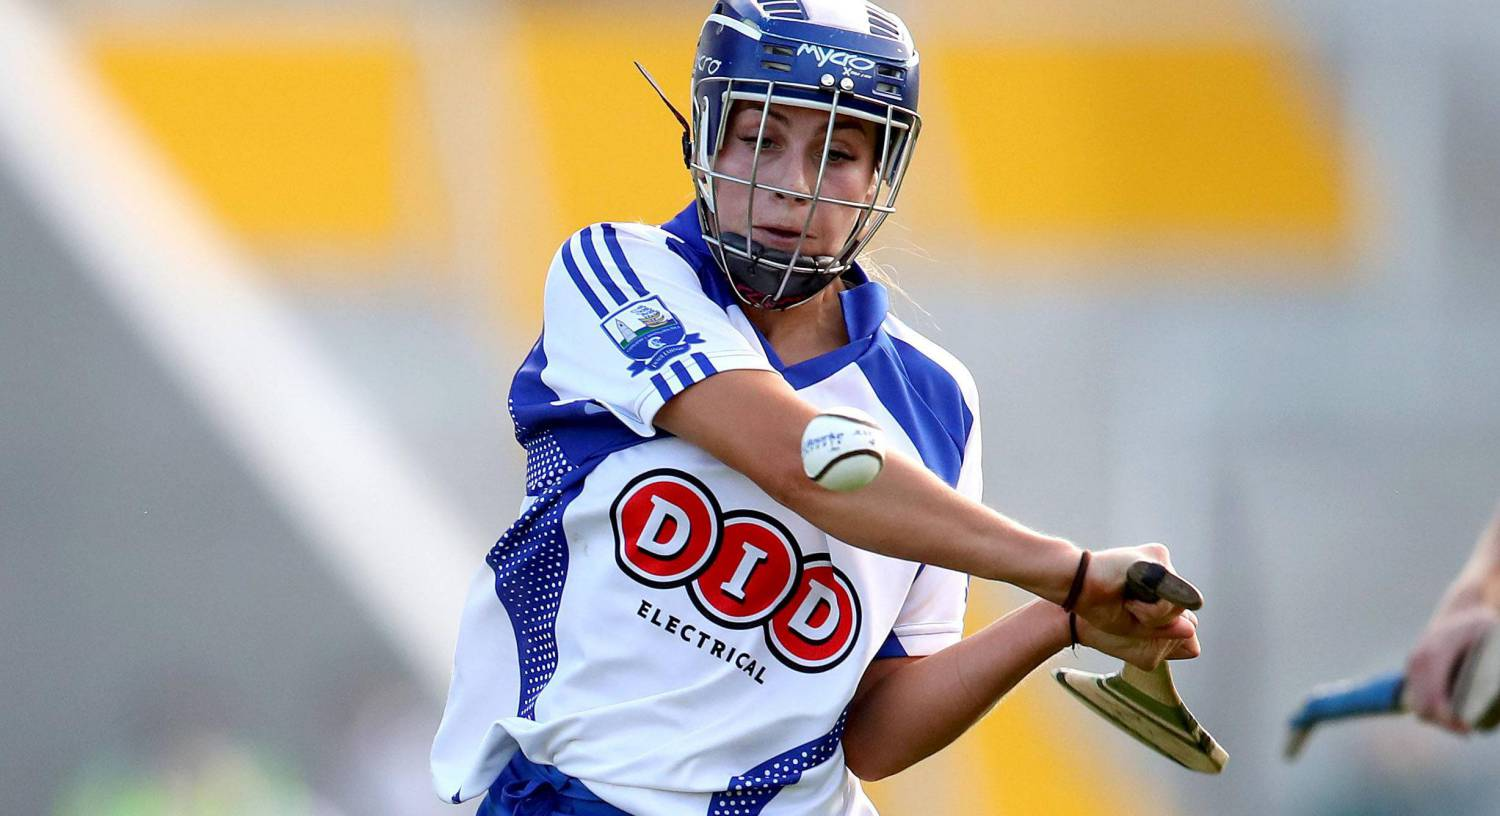 Niamh Rockett:'When I was 16 I was told I would be in a wheelchair by the time I was 30'